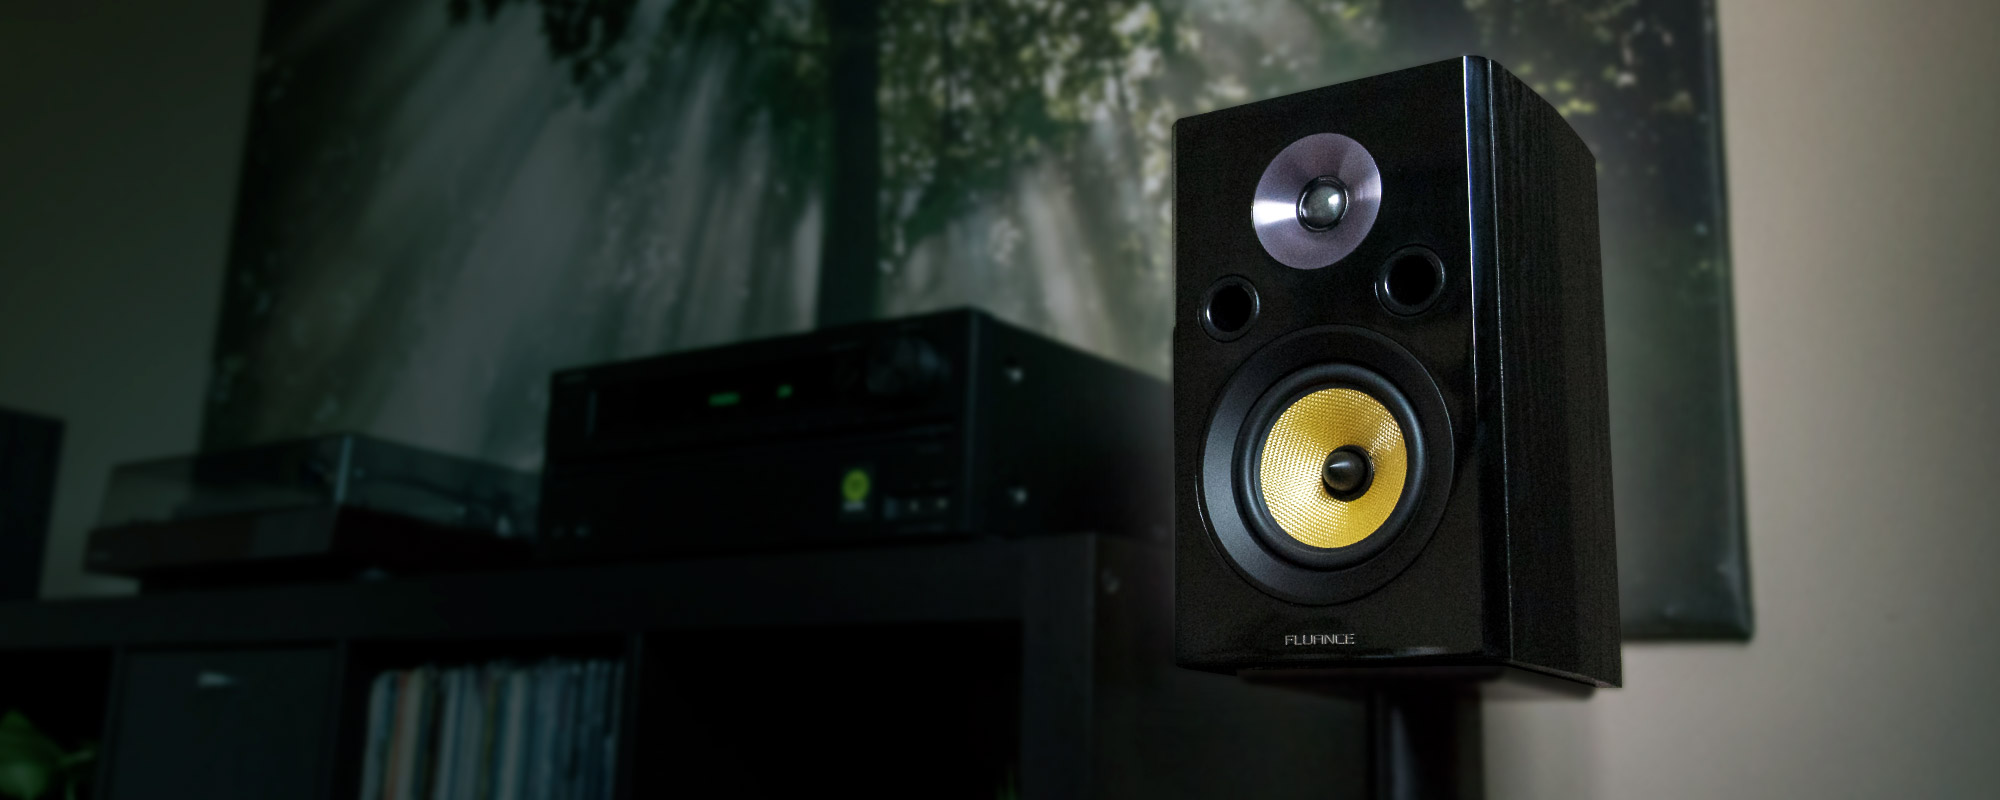 25% Off Select Fluance Surround Sound Speakers